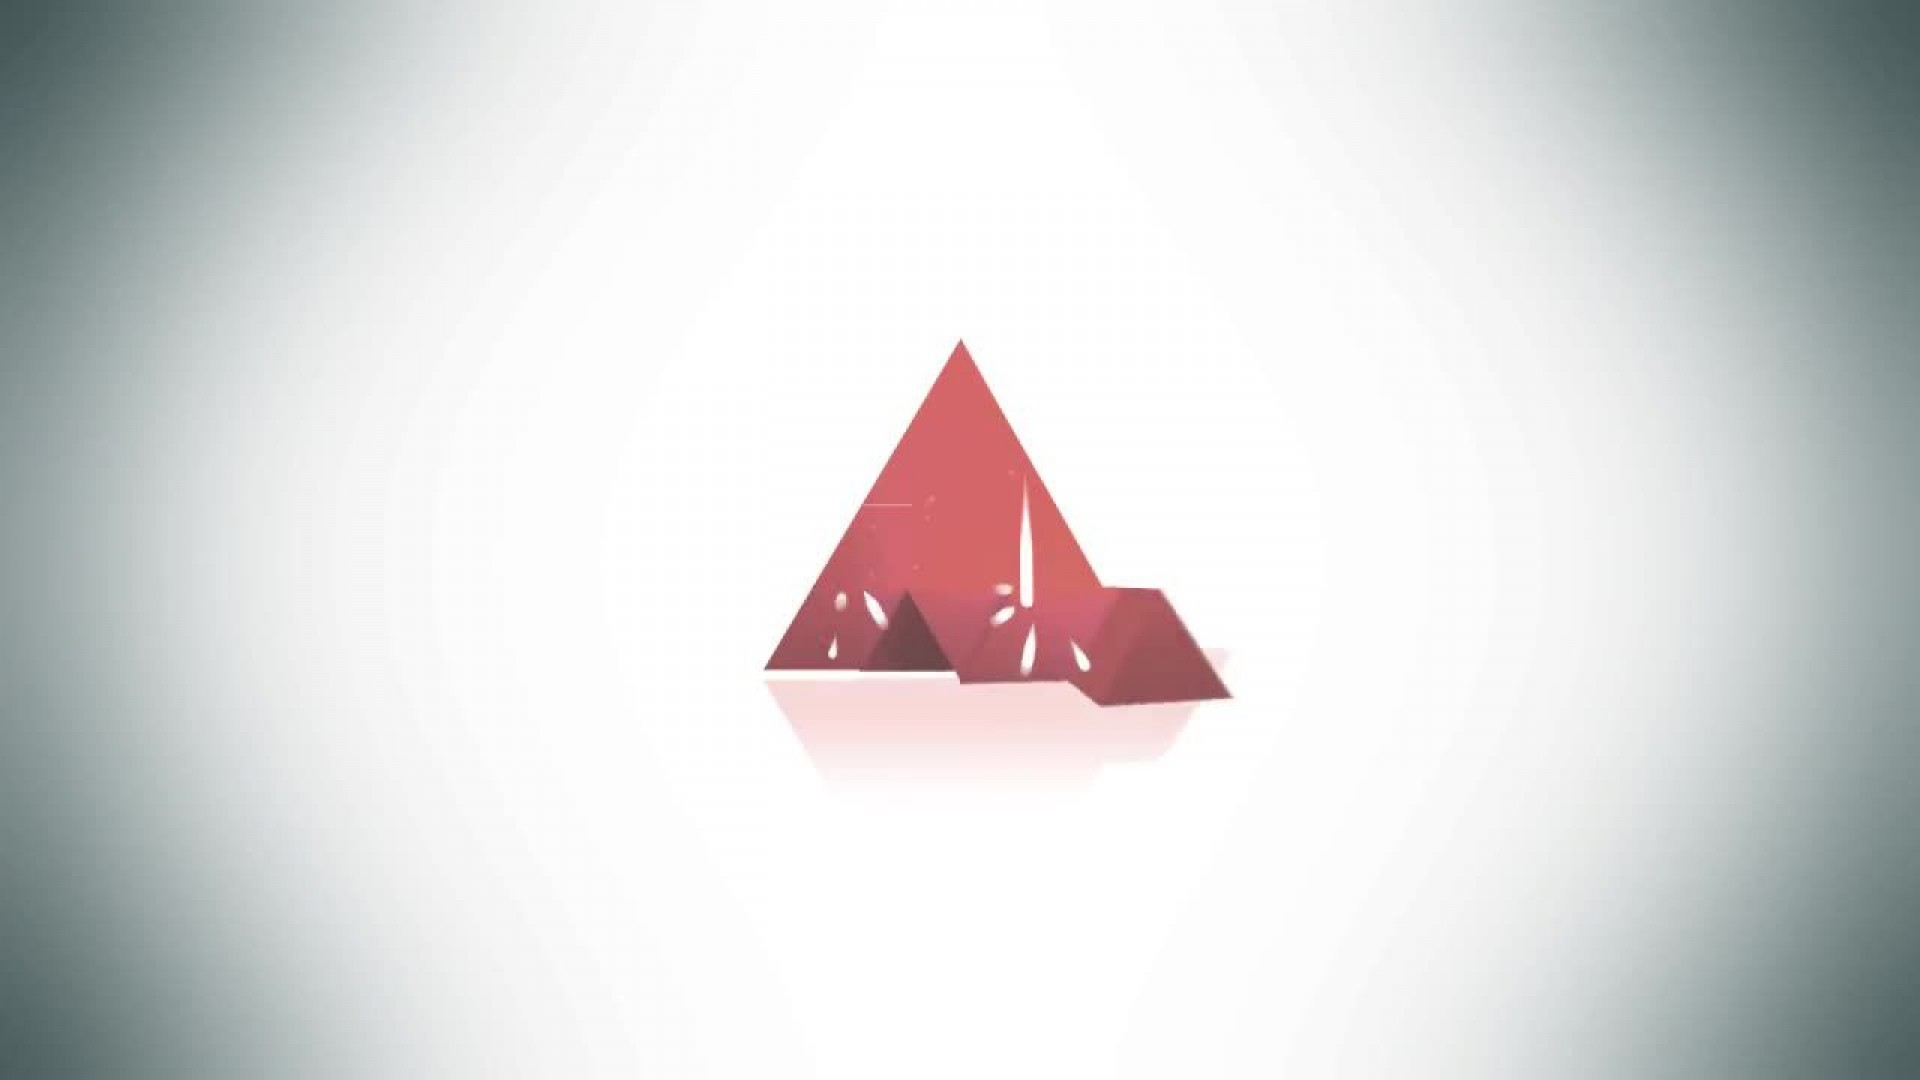 008 Best Adobe After Effect Logo Template Free Download Highest Quality  Cs6 Title Animation1920